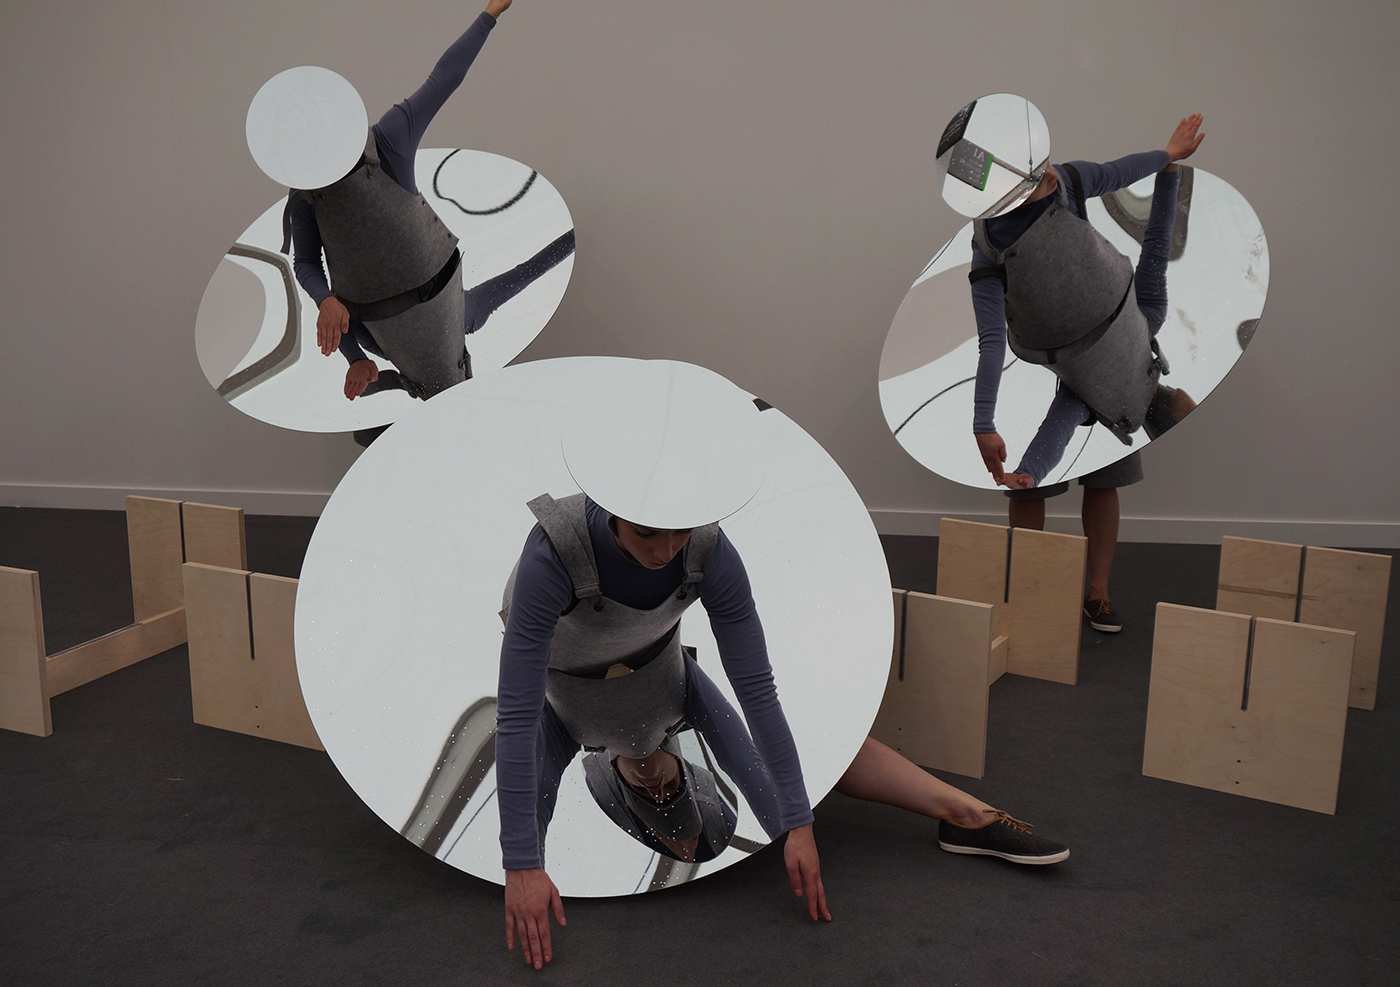 """Three performers Eduardo Navarro's """"Instruction from the sky"""" for Frieze Projects"""